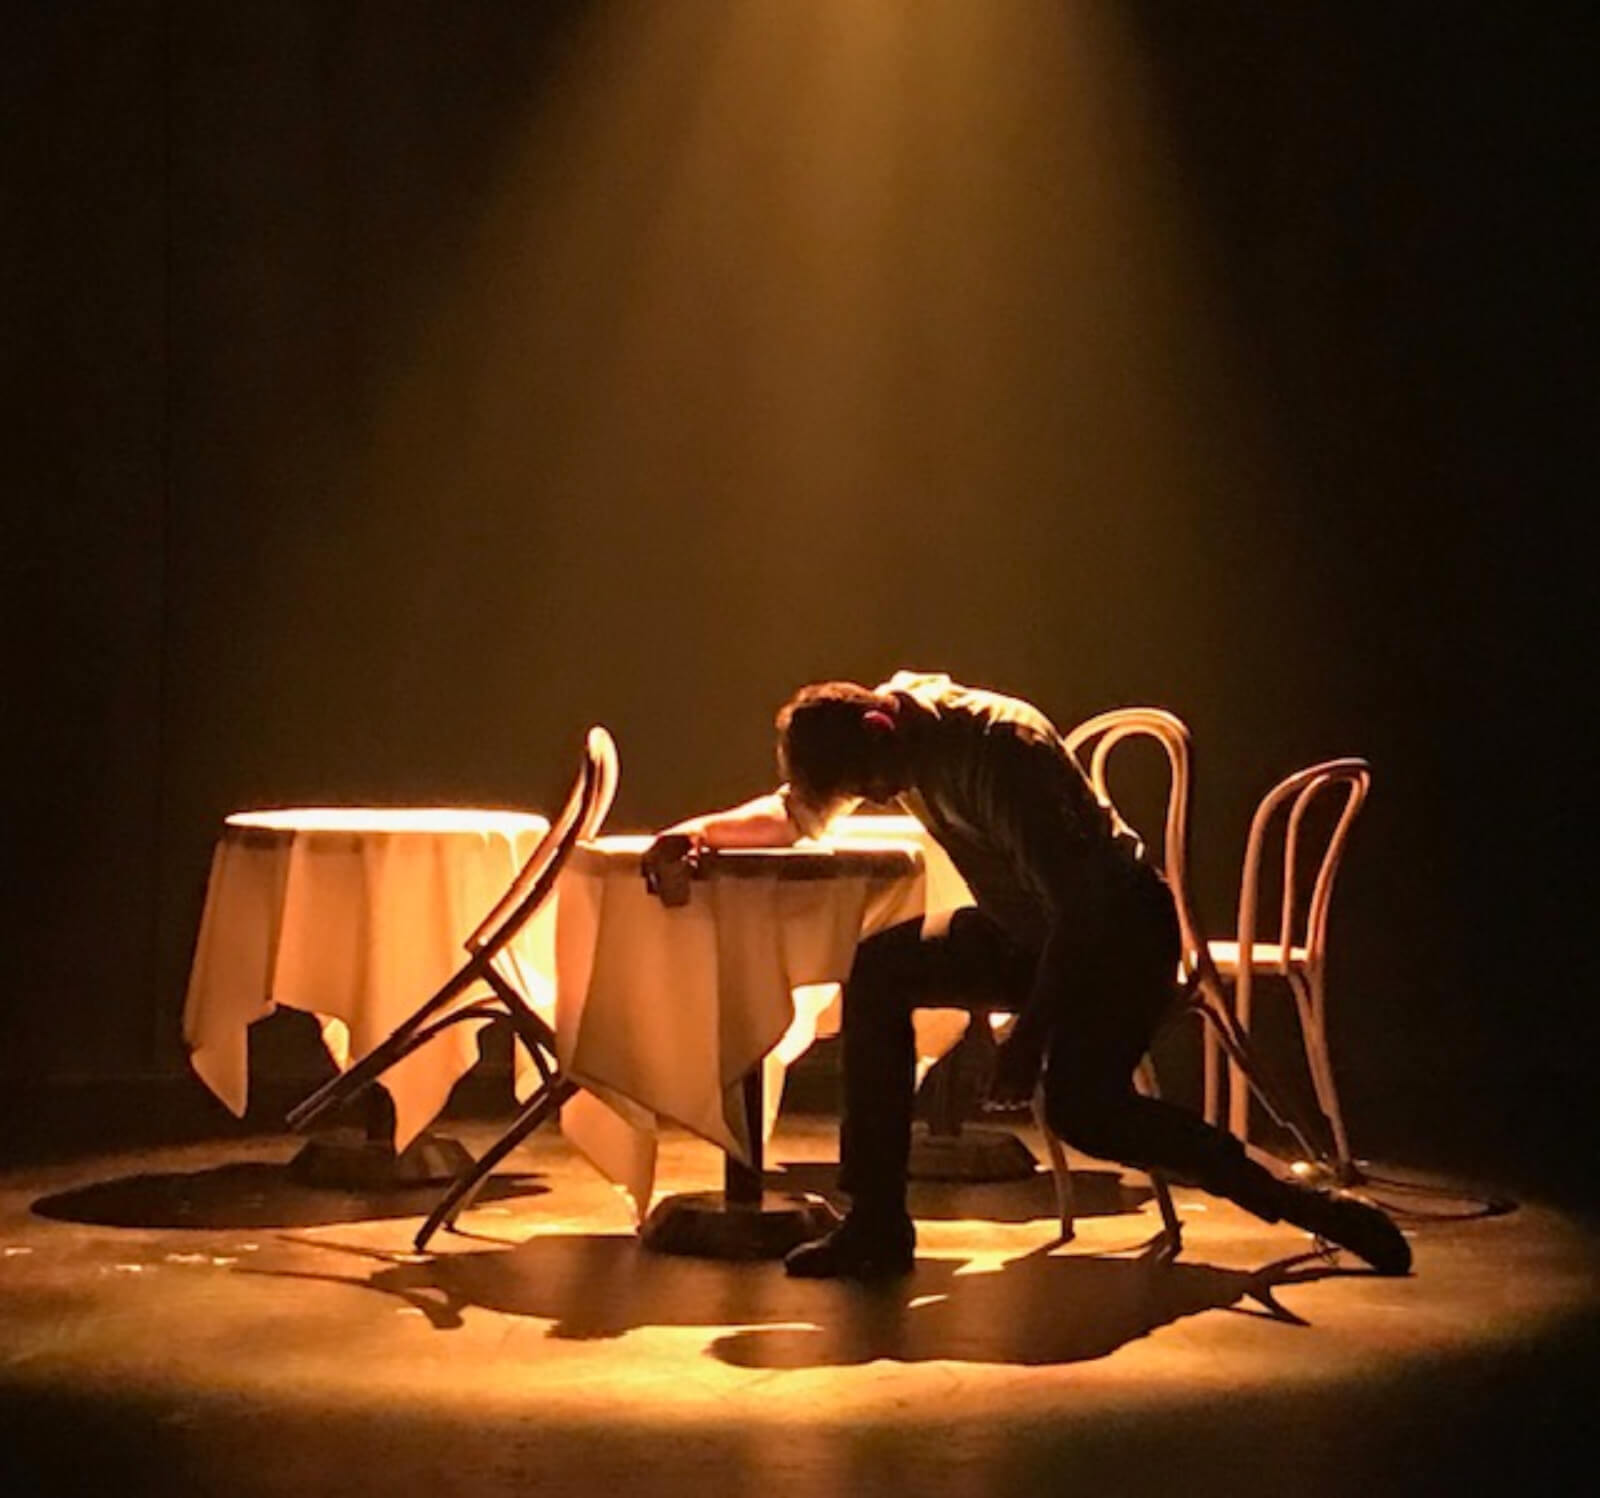 """John Marcher played by Tony Yazbeck in the """"Waltz Melancolique"""" scene from The Beast in the Jungle. Tony Yazbeck hunched over a table in dim lighting."""